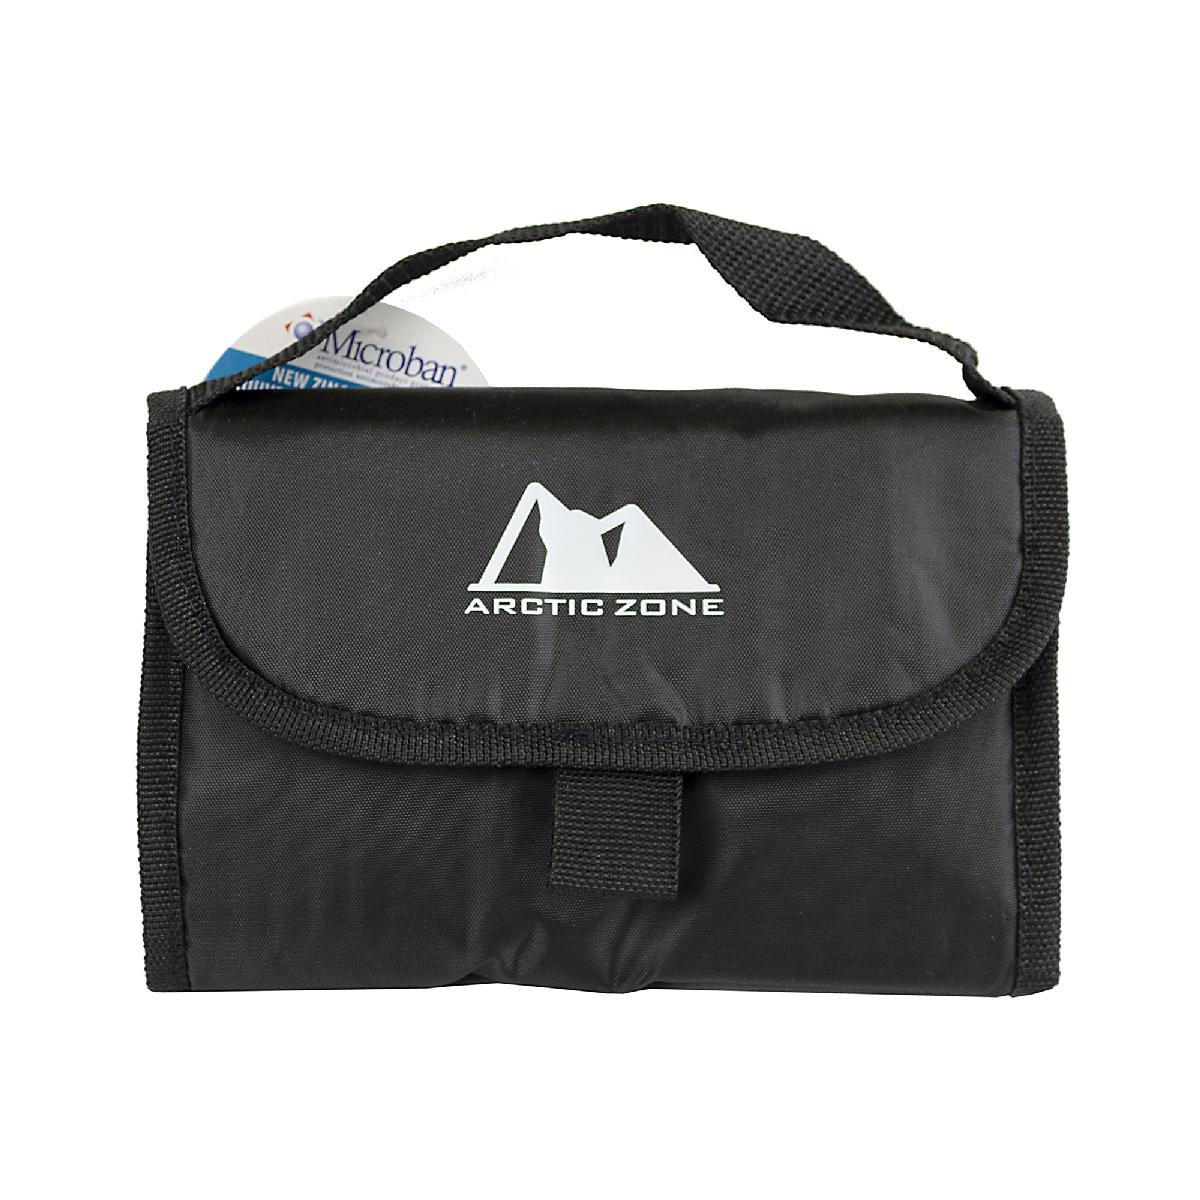 Arctic Zone Insulated Lunch Bag Black